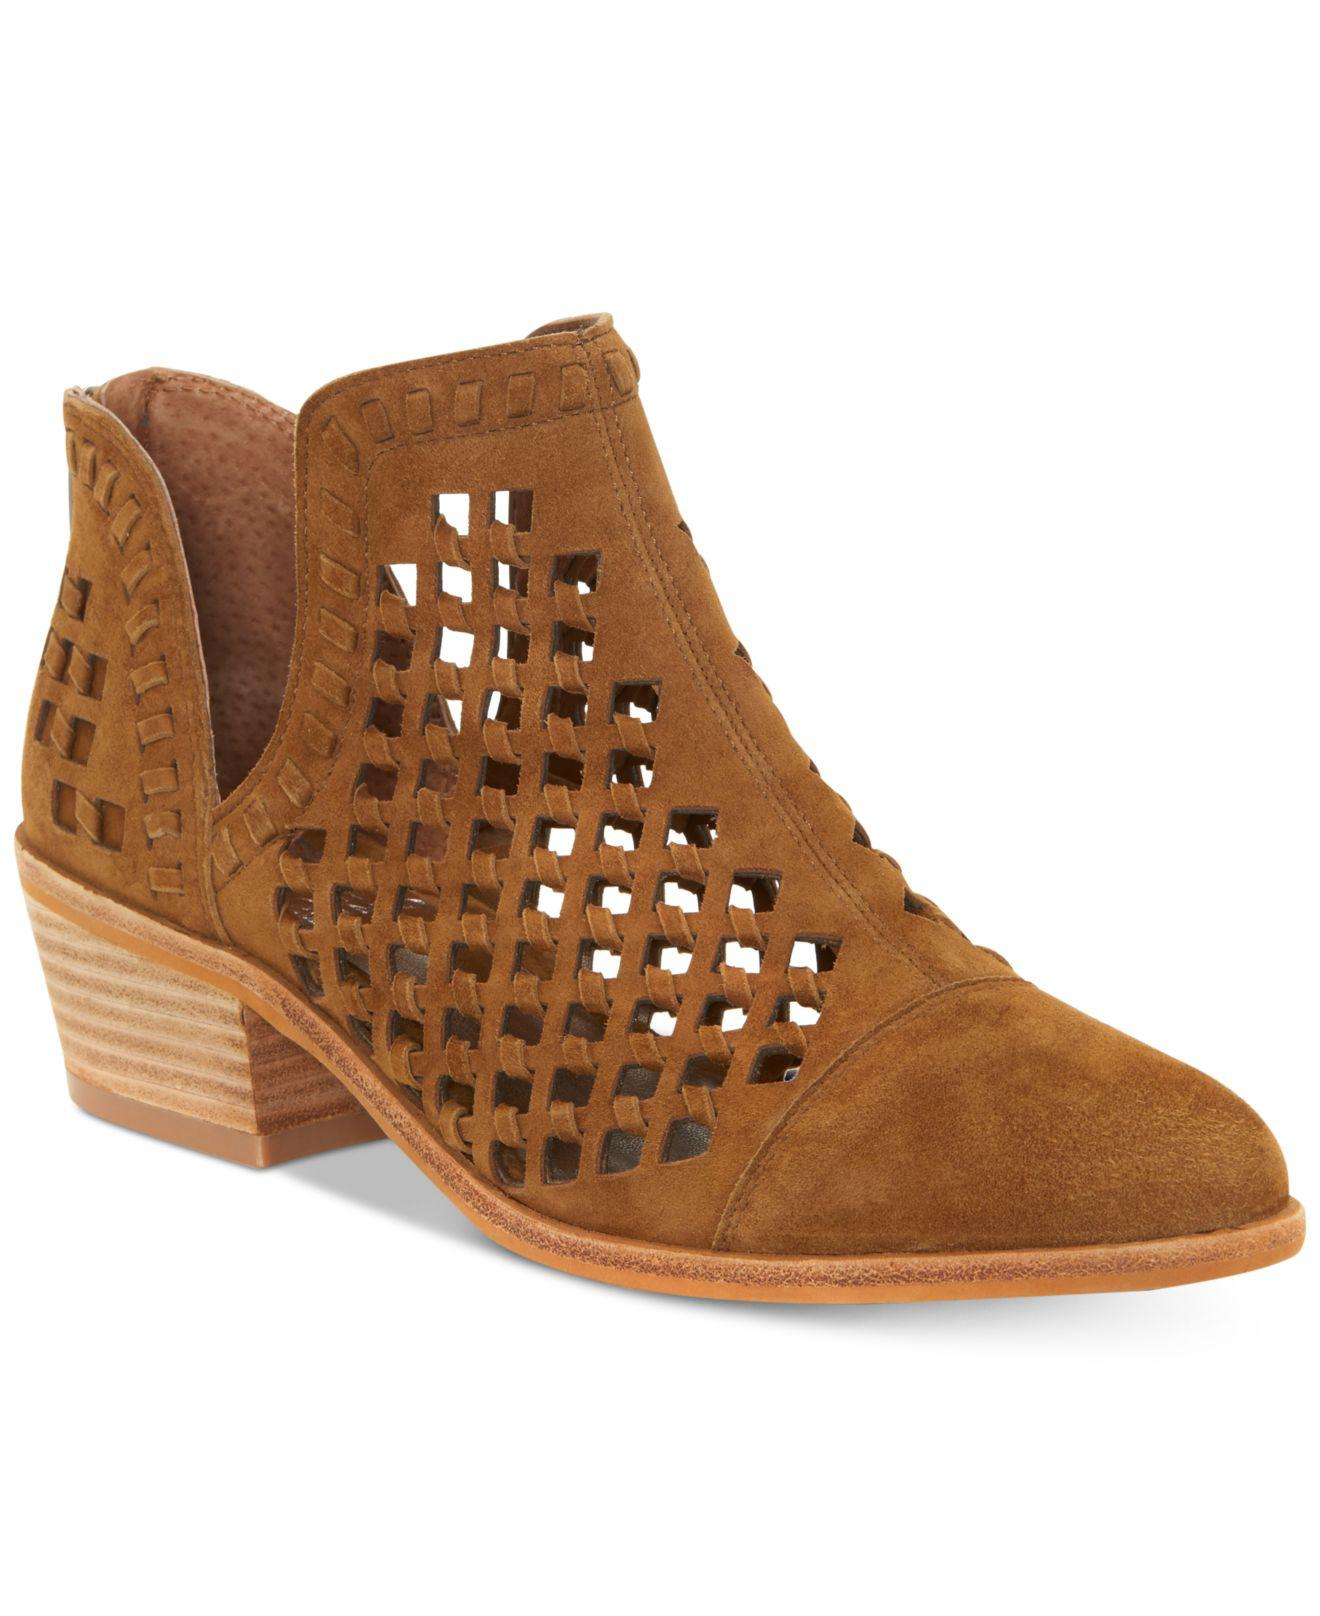 2cbeef55d11 Lyst - Vince Camuto Photriena Booties in Brown - Save 55%